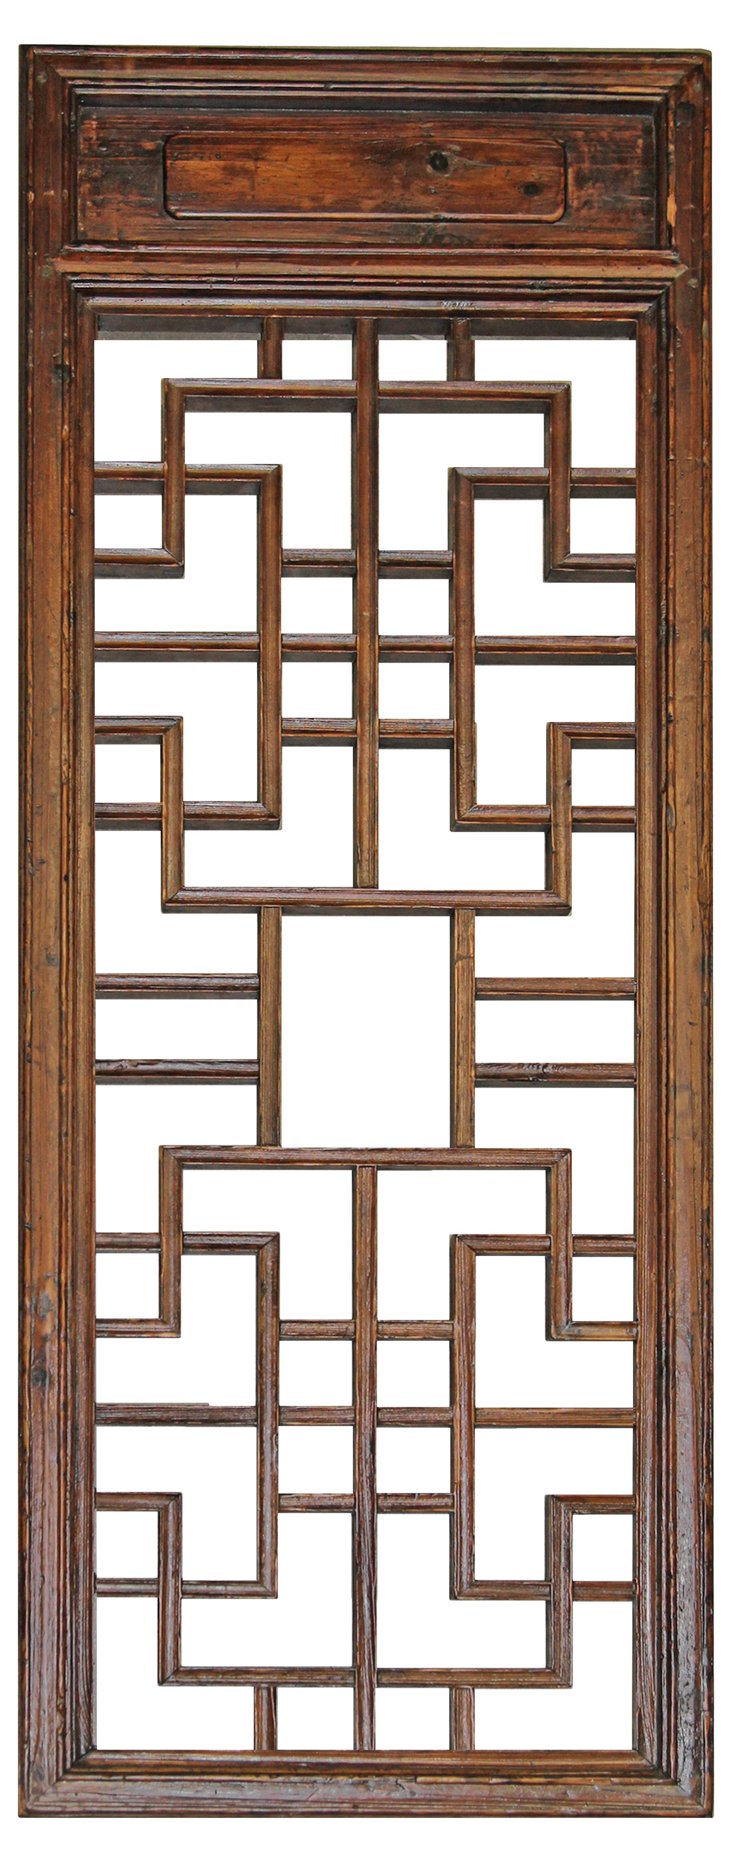 19th-C. Chinese Wood Lattice Screen